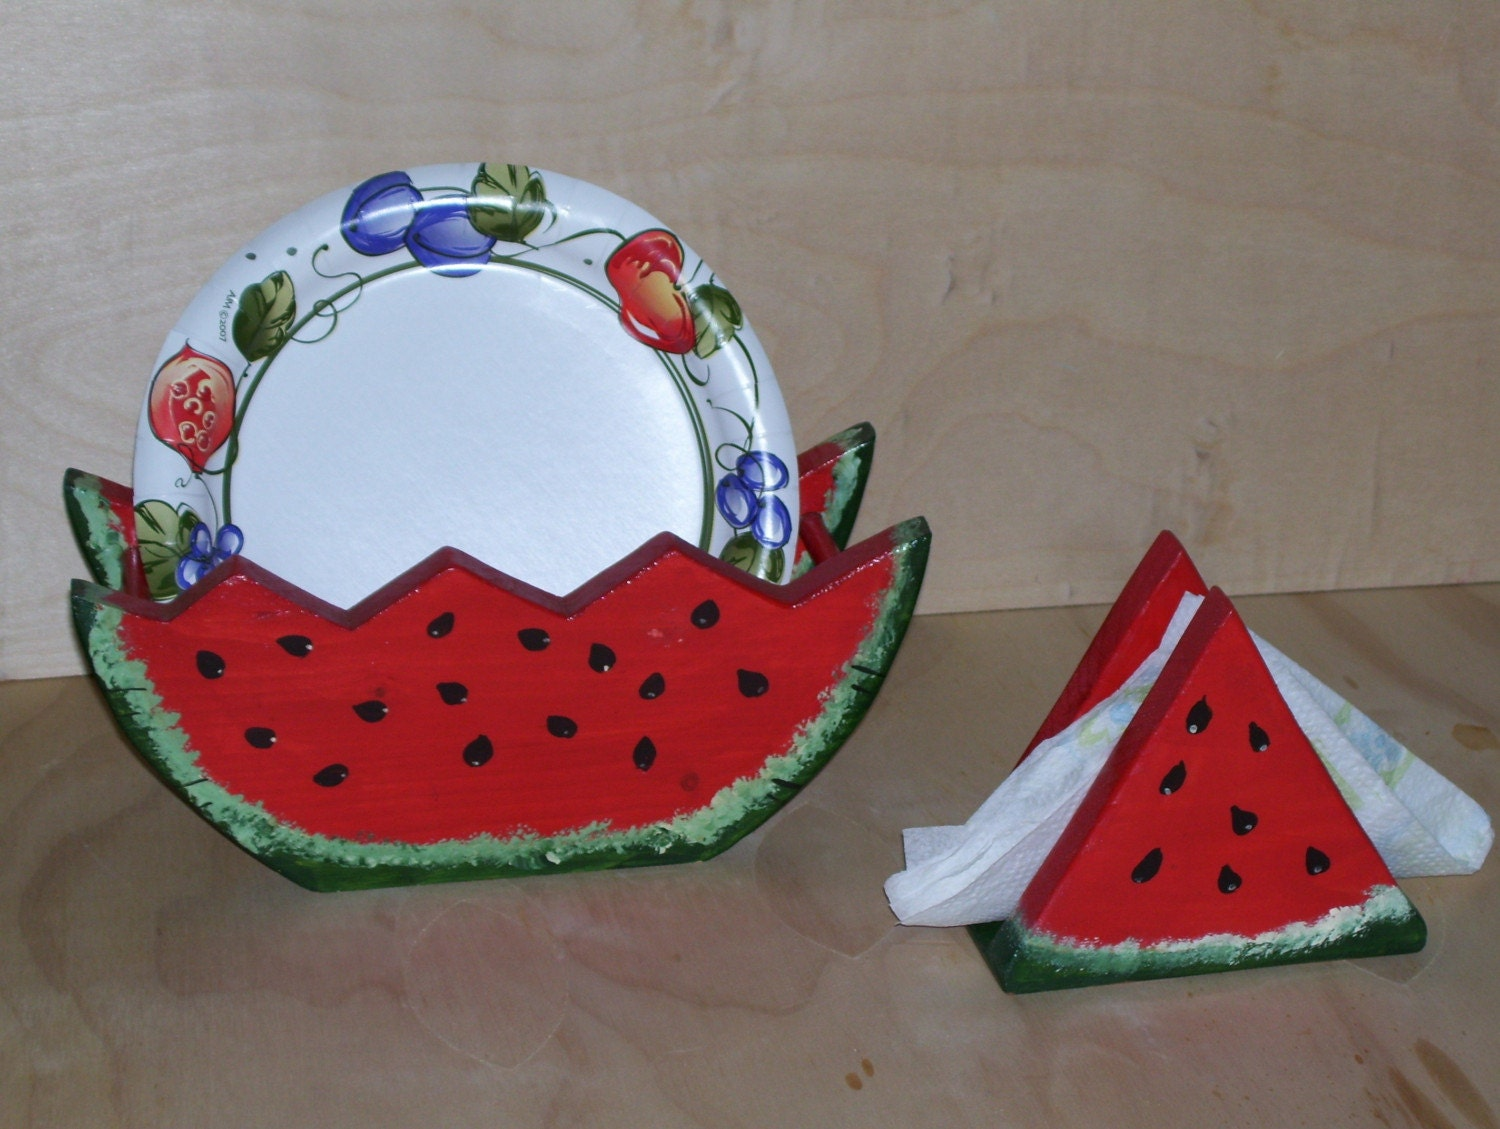 items similar to paper plate and napkin holder set watermelon theme on etsy. Black Bedroom Furniture Sets. Home Design Ideas